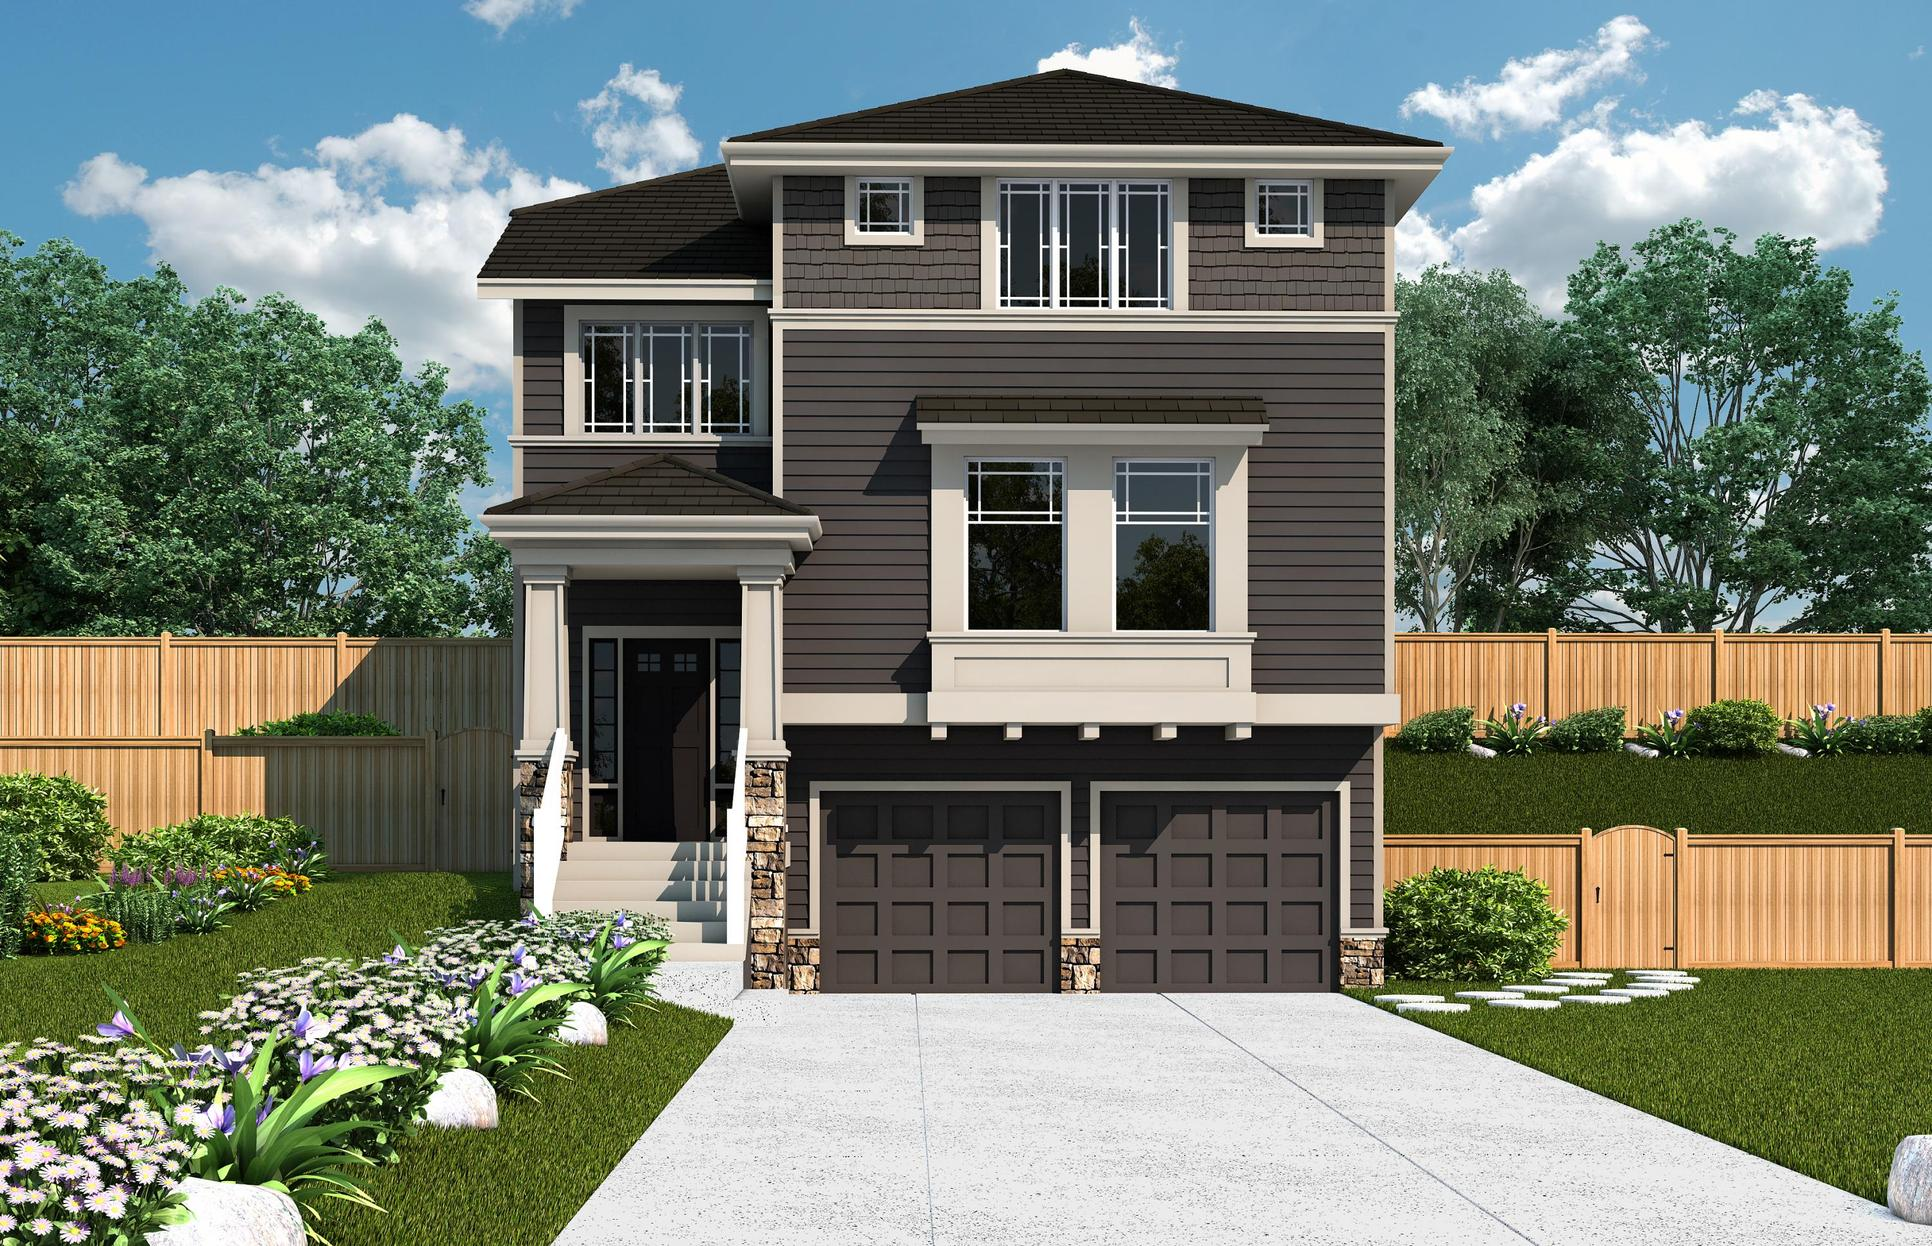 Exterior:CT 2696A - Elevation 1